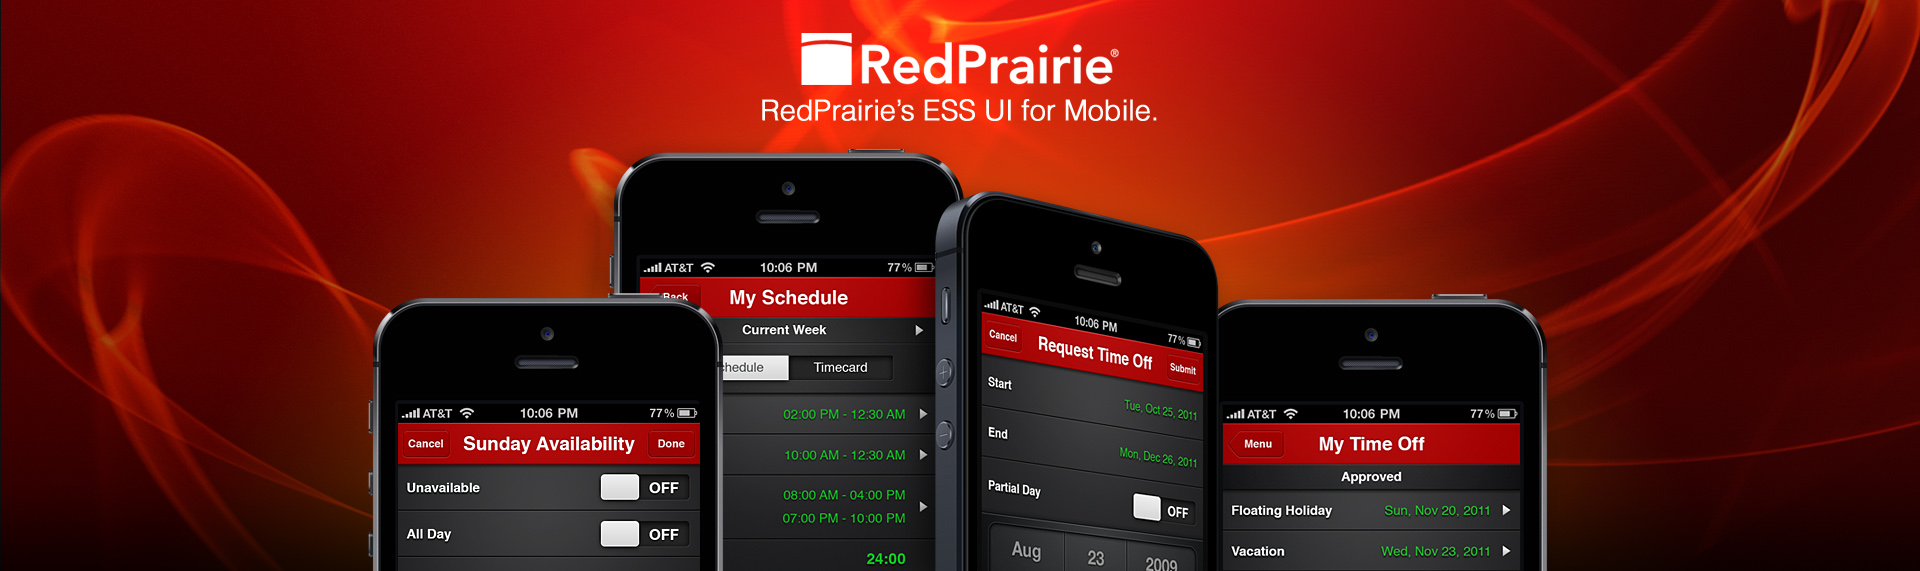 RedPrairie   Browser + Mobile Web Applications UX & UI Design  Enterprise software giant, RedPrairie, contracted The Skins Factory to design the user interface & interaction design for multiple applications resulting in perfect symmetry between their enterprise software application user interfaces. This included 3 desktop browser interfaces, a mobile browser app & a native Android app. We also created a custom GUI kit for the RedPrairie developers.